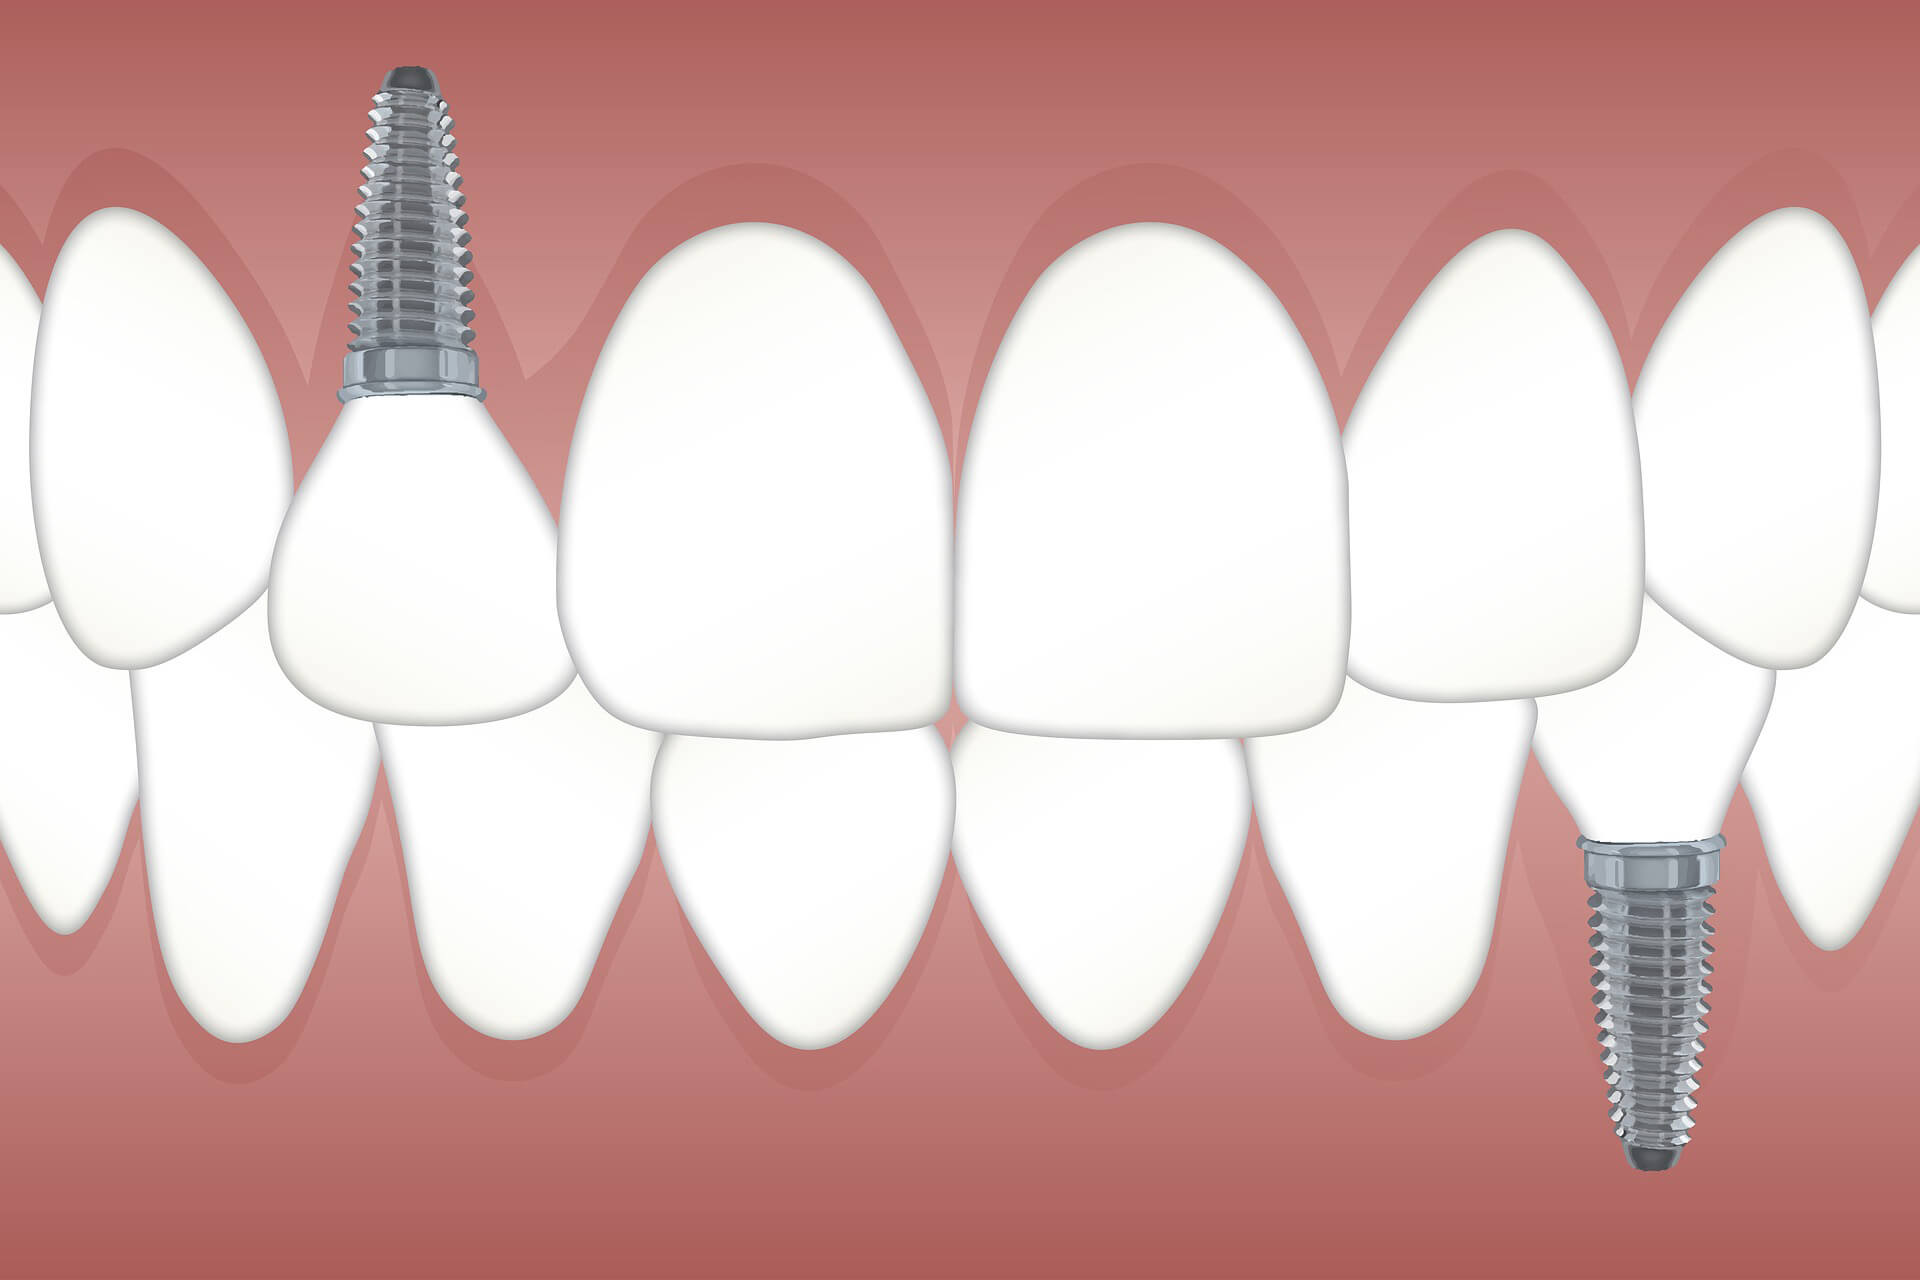 How to Find Dental Insurance-That-Covers-Implants - InsuranceSquare